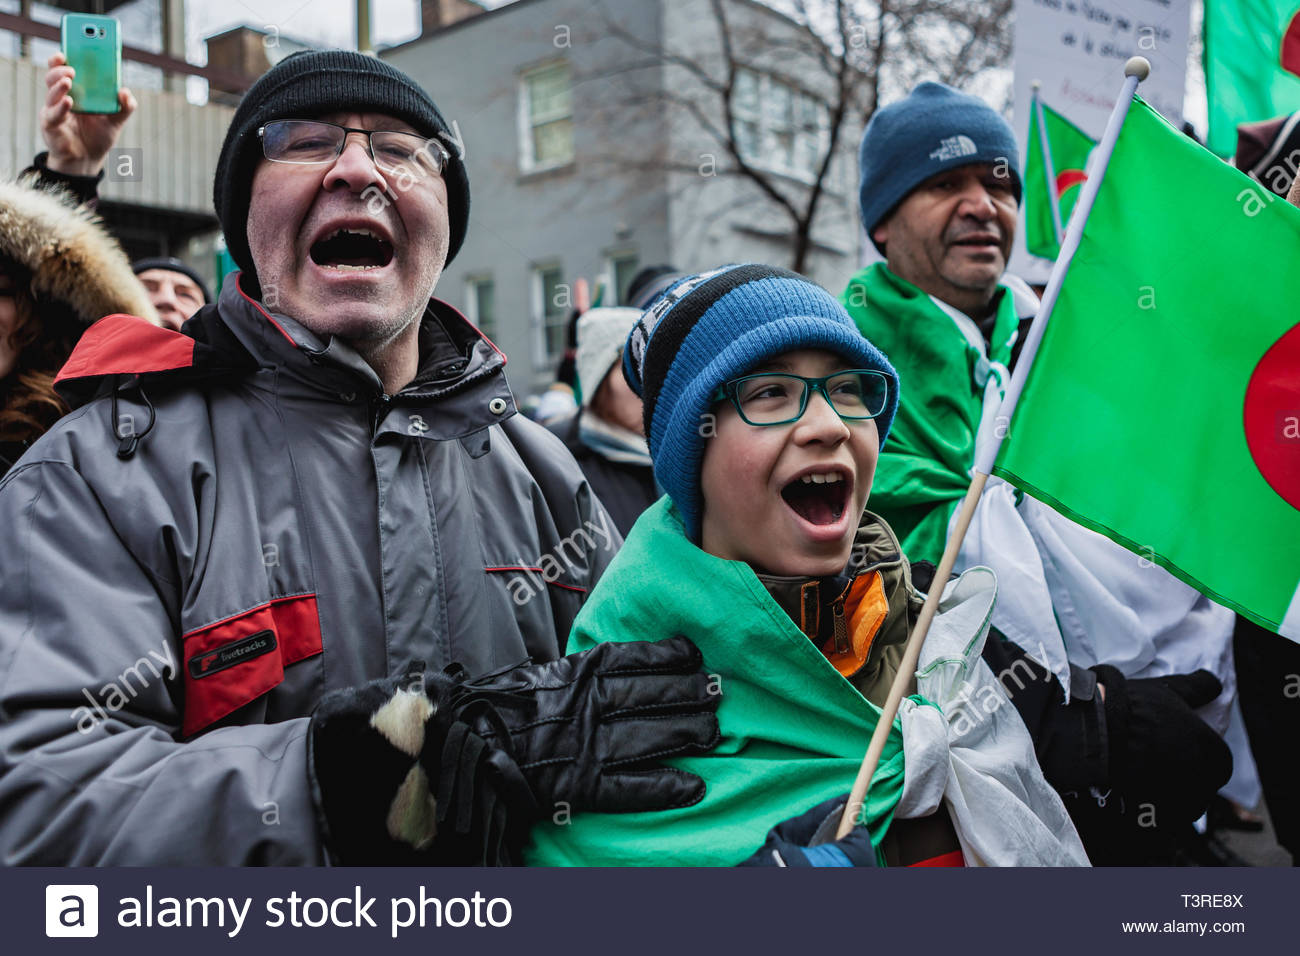 A father and his young son are screaming, during the demonstration of the Algerian diaspora demanding the departure of President Bouteflika. Montreal, - Stock Image